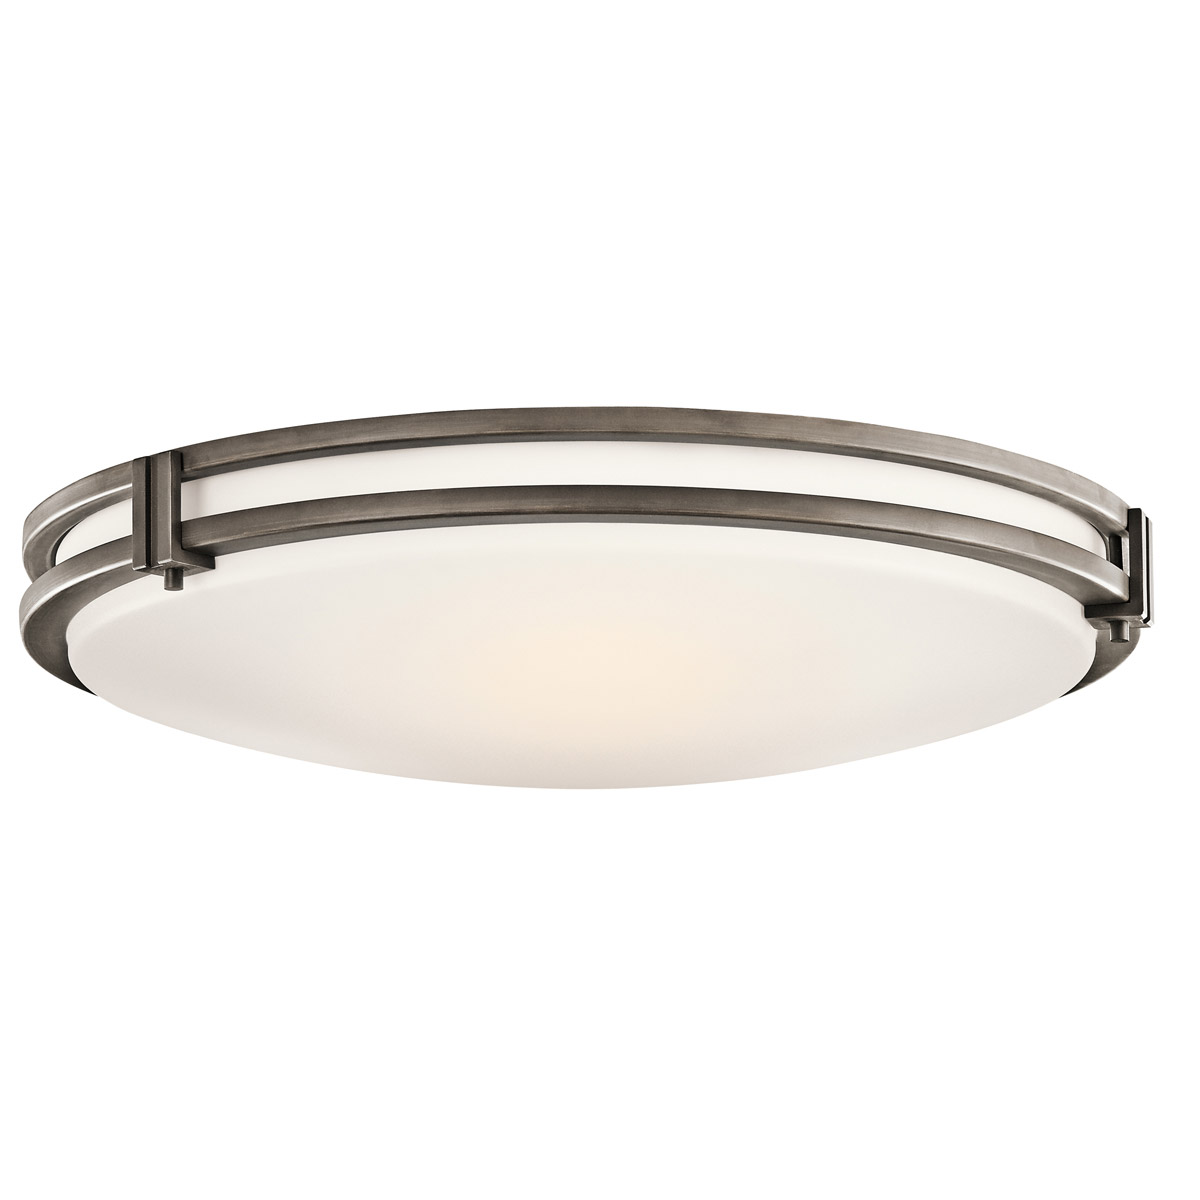 Kichler 10827oz Flush Mount Ceiling Fixture